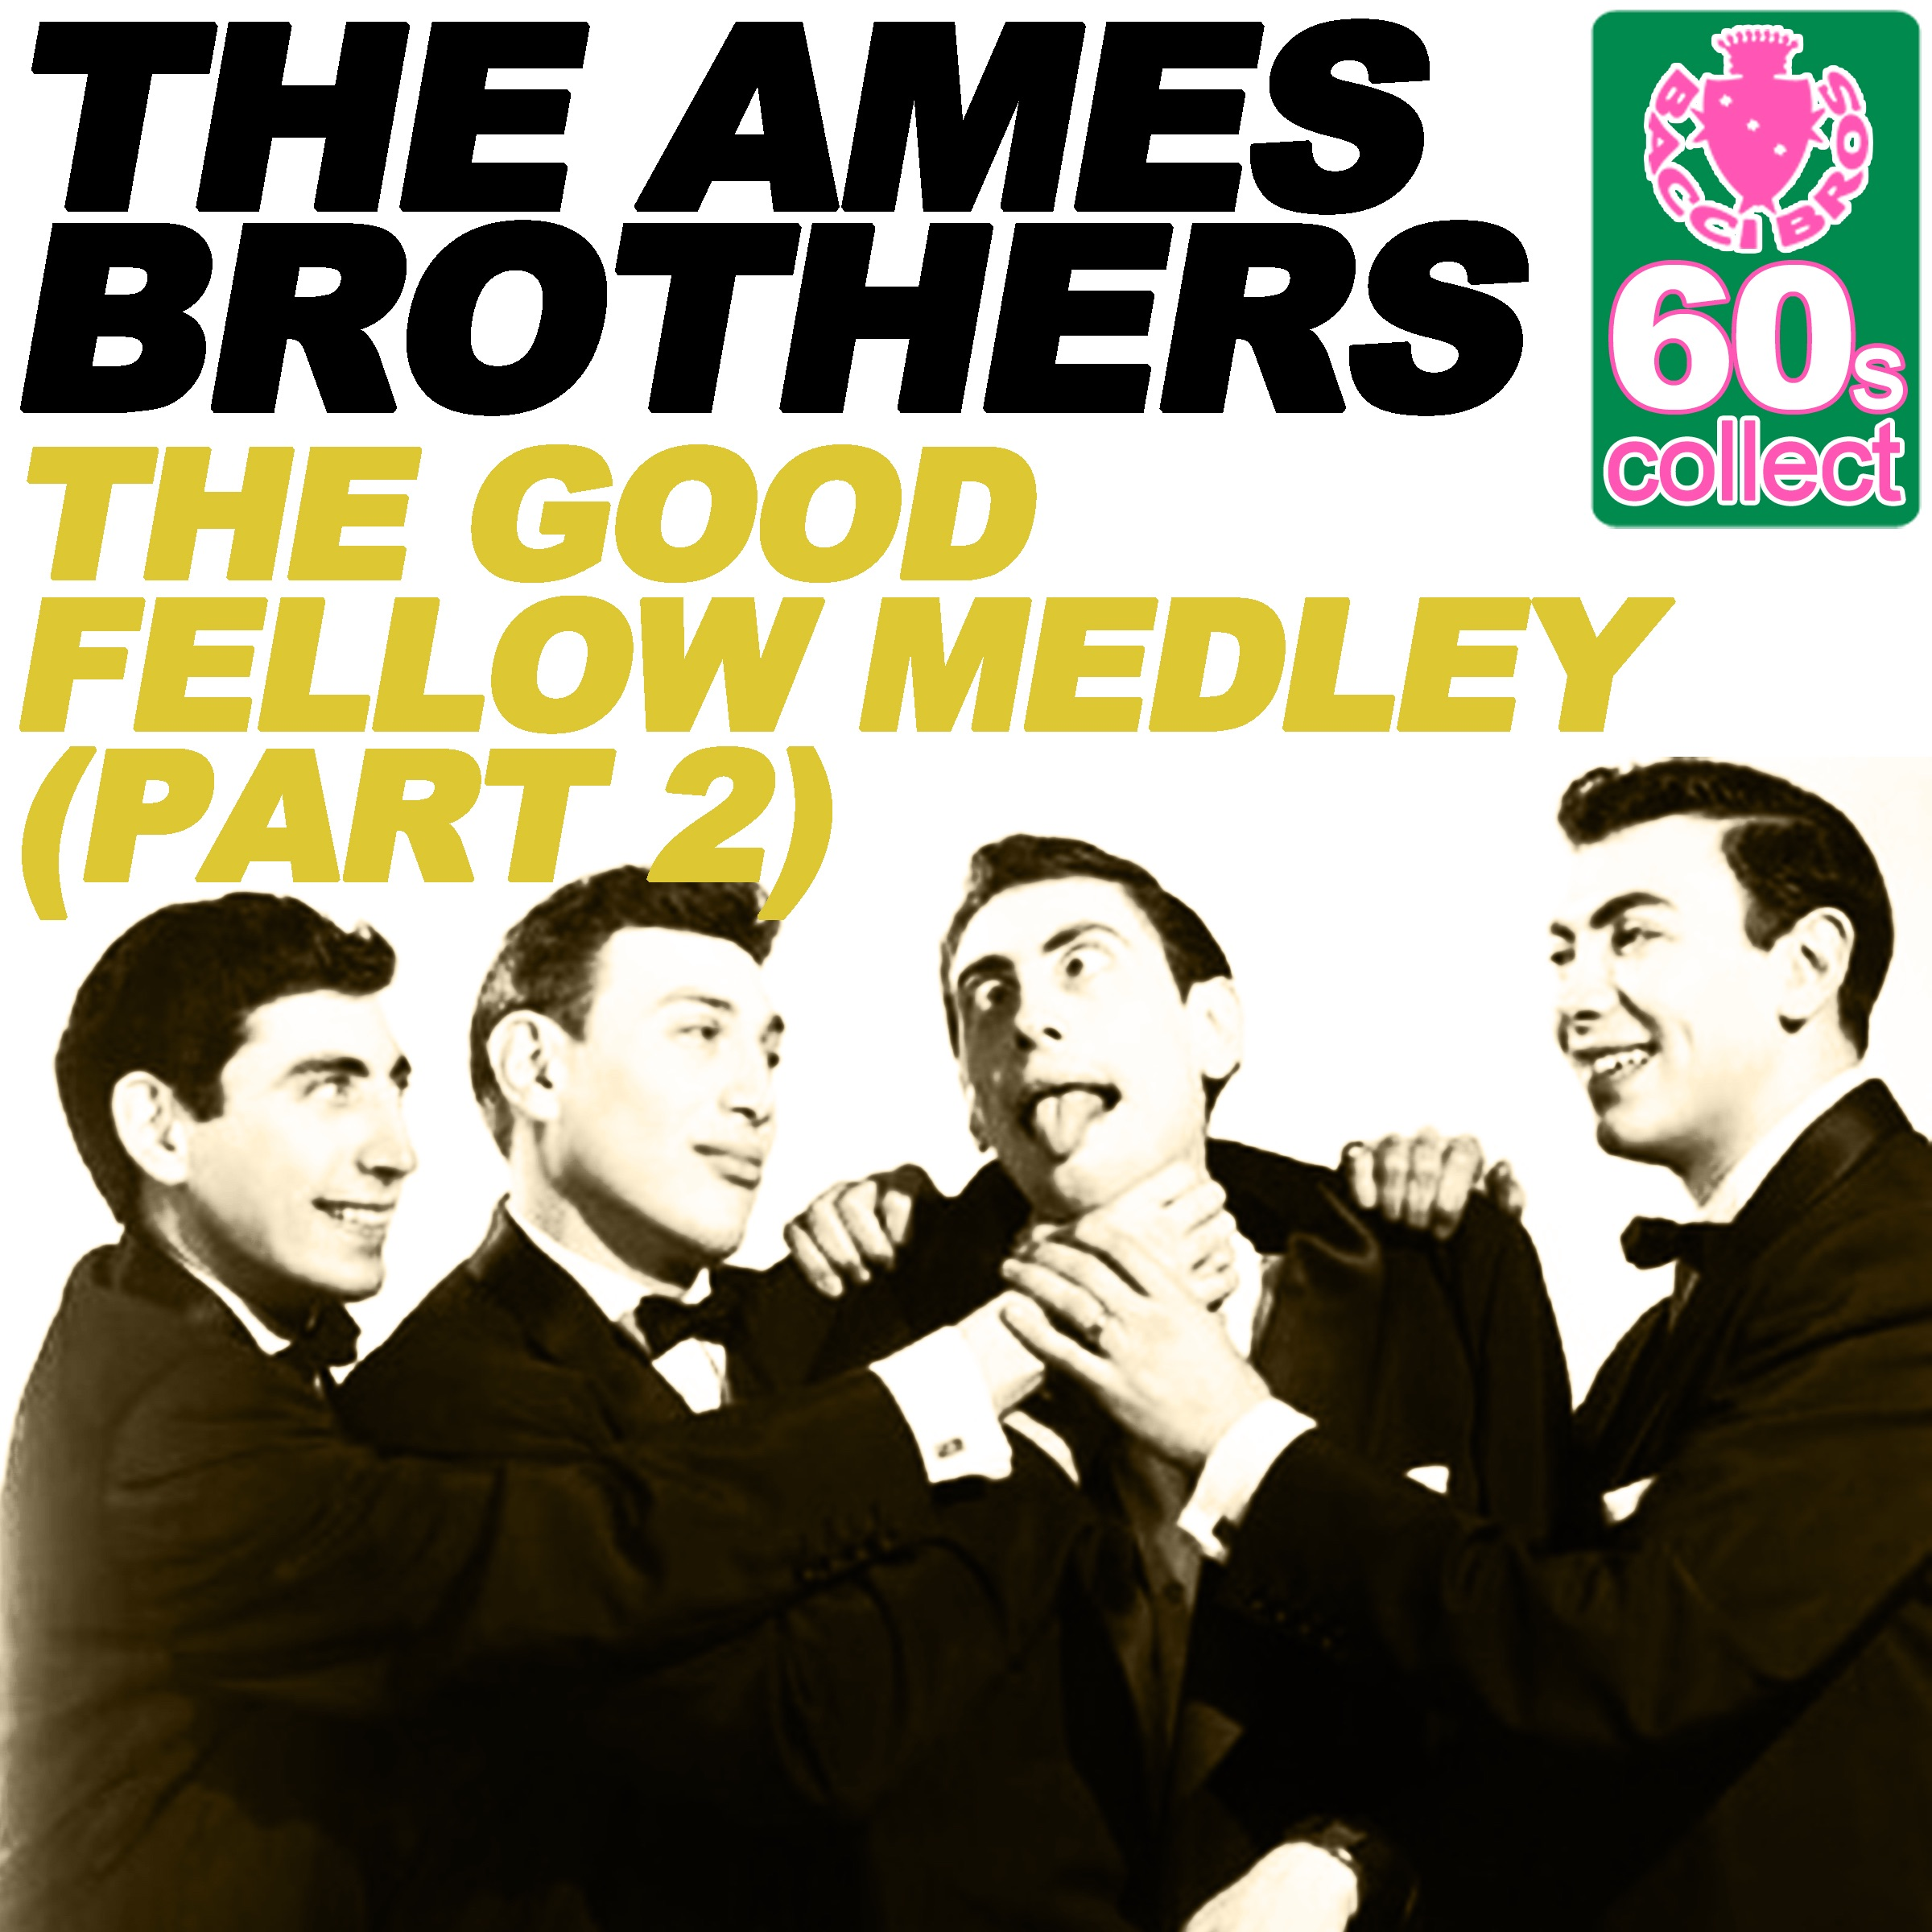 The Good Fellow Medley (Remastered) [Part 2] - Single